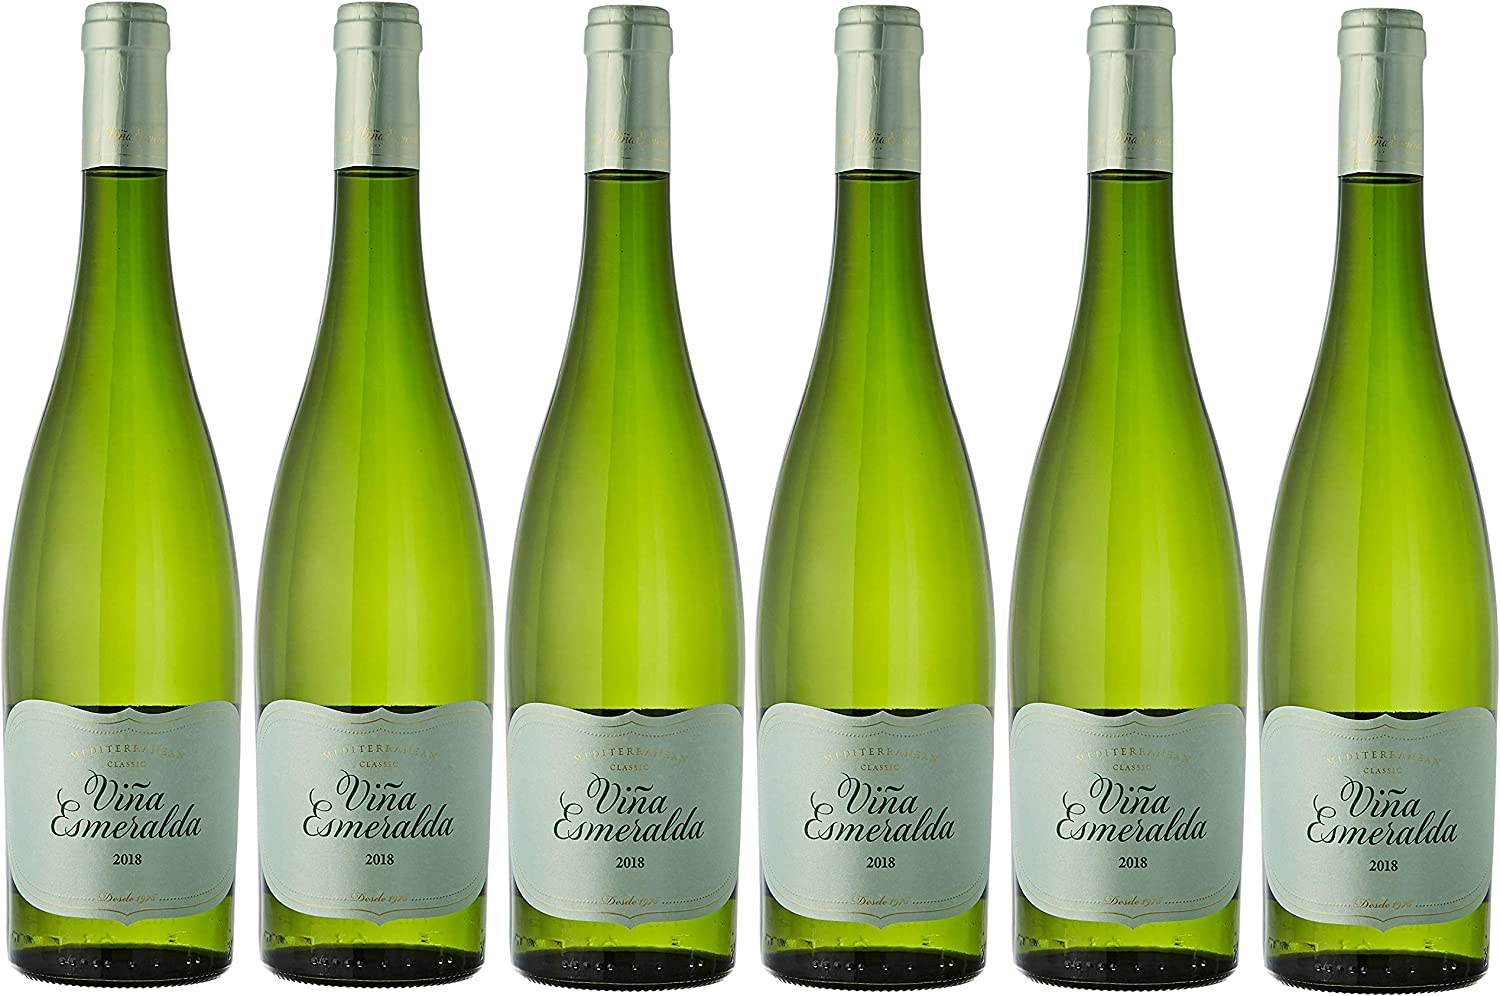 Viña Esmeralda, Vino Blanco - 6 botellas de 75 cl, Total: 4500 ml